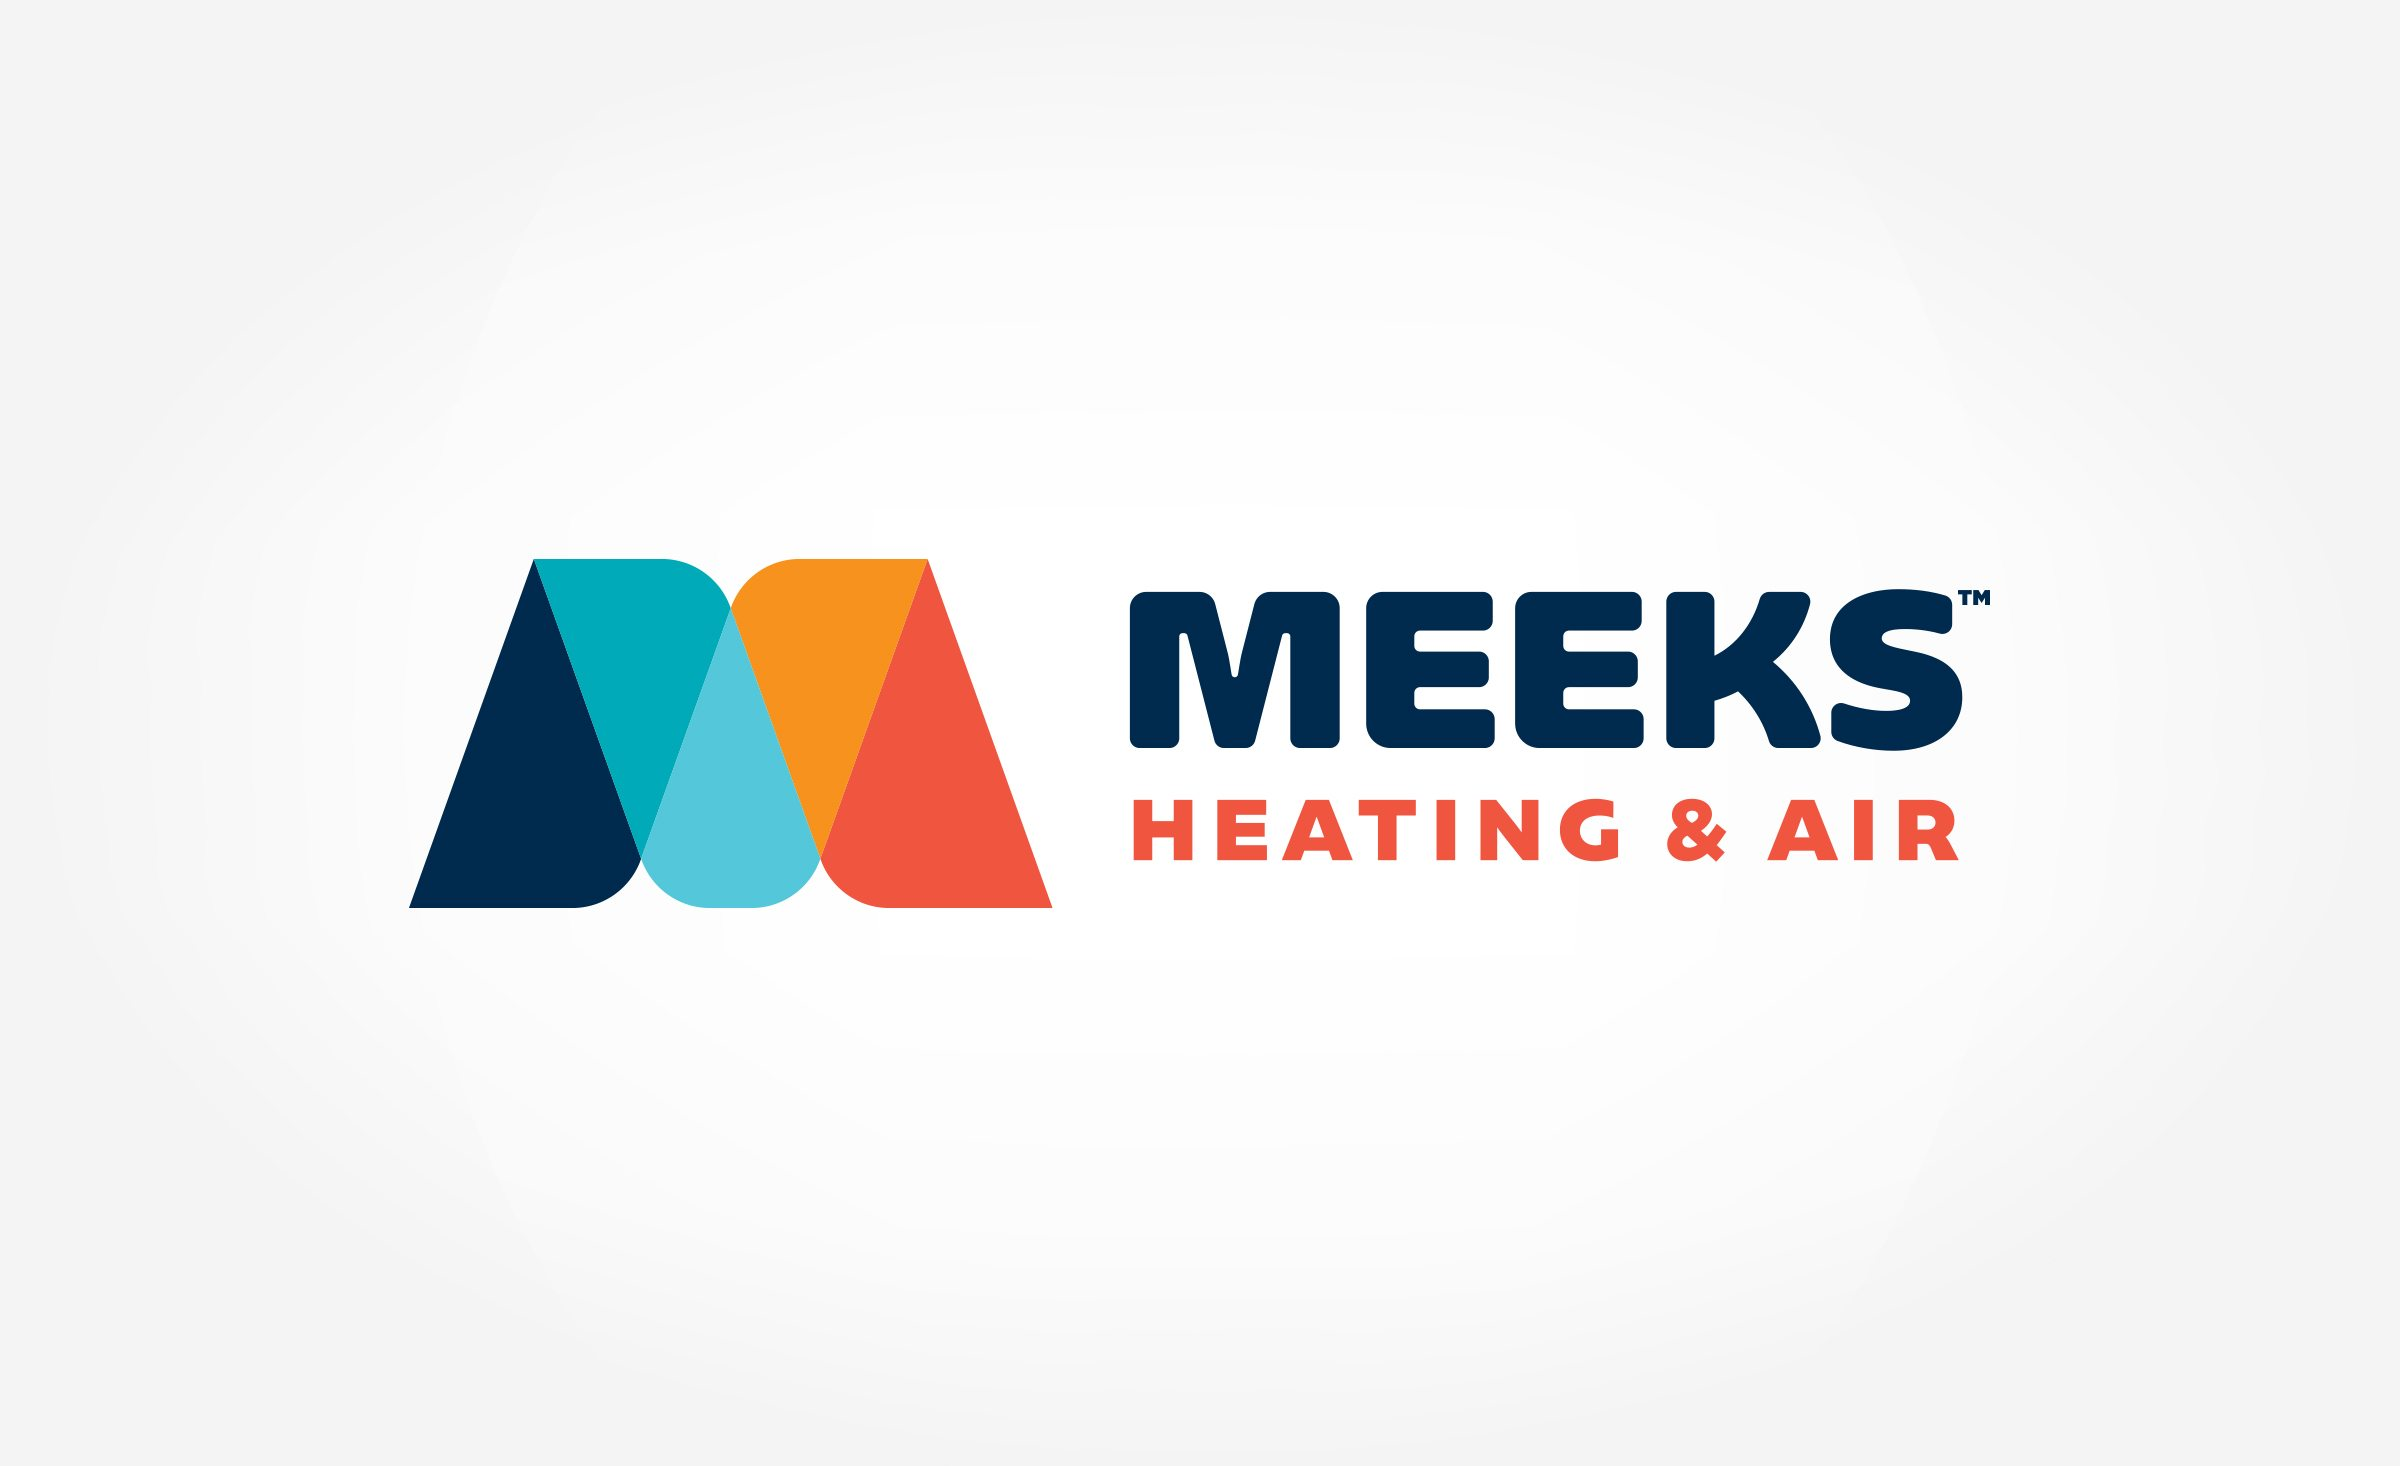 Meeks Heating & Air